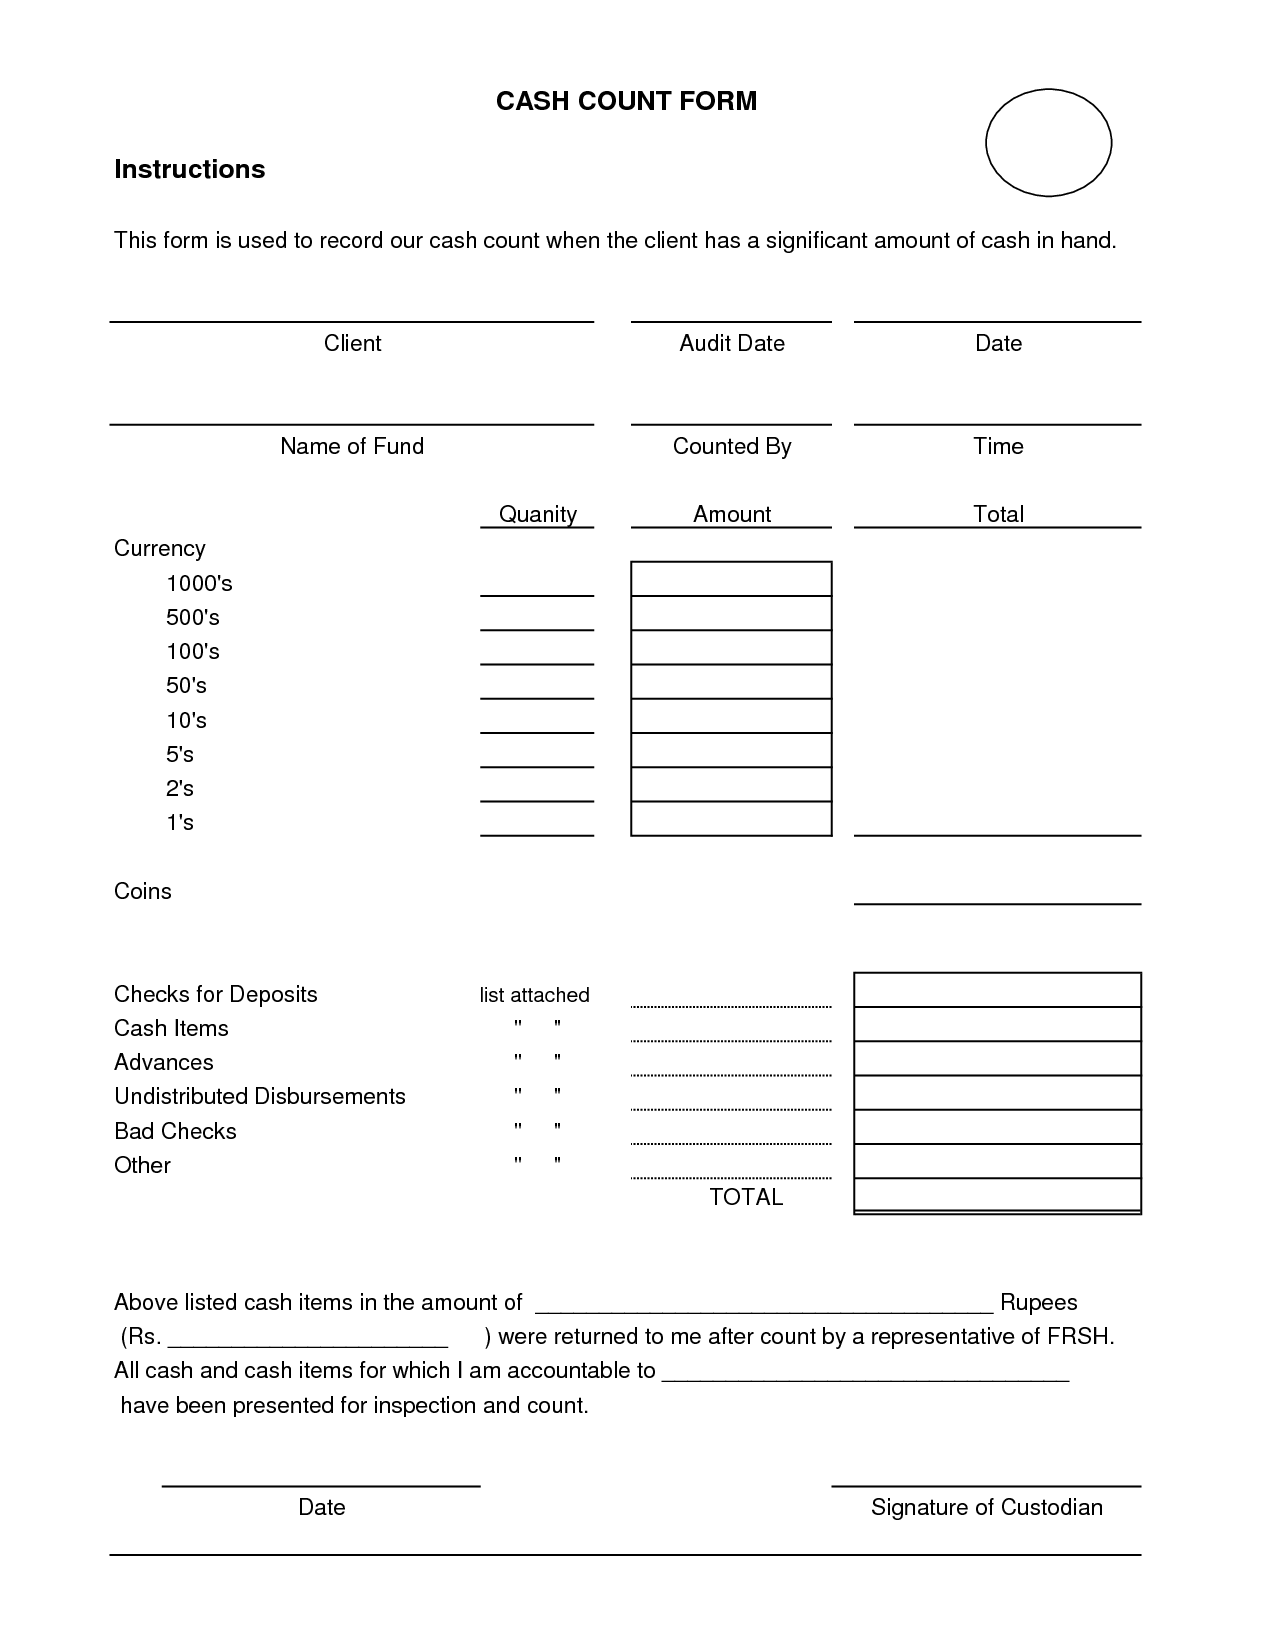 Cash Count Sheet Template   Fill Online, Printable, Fillable